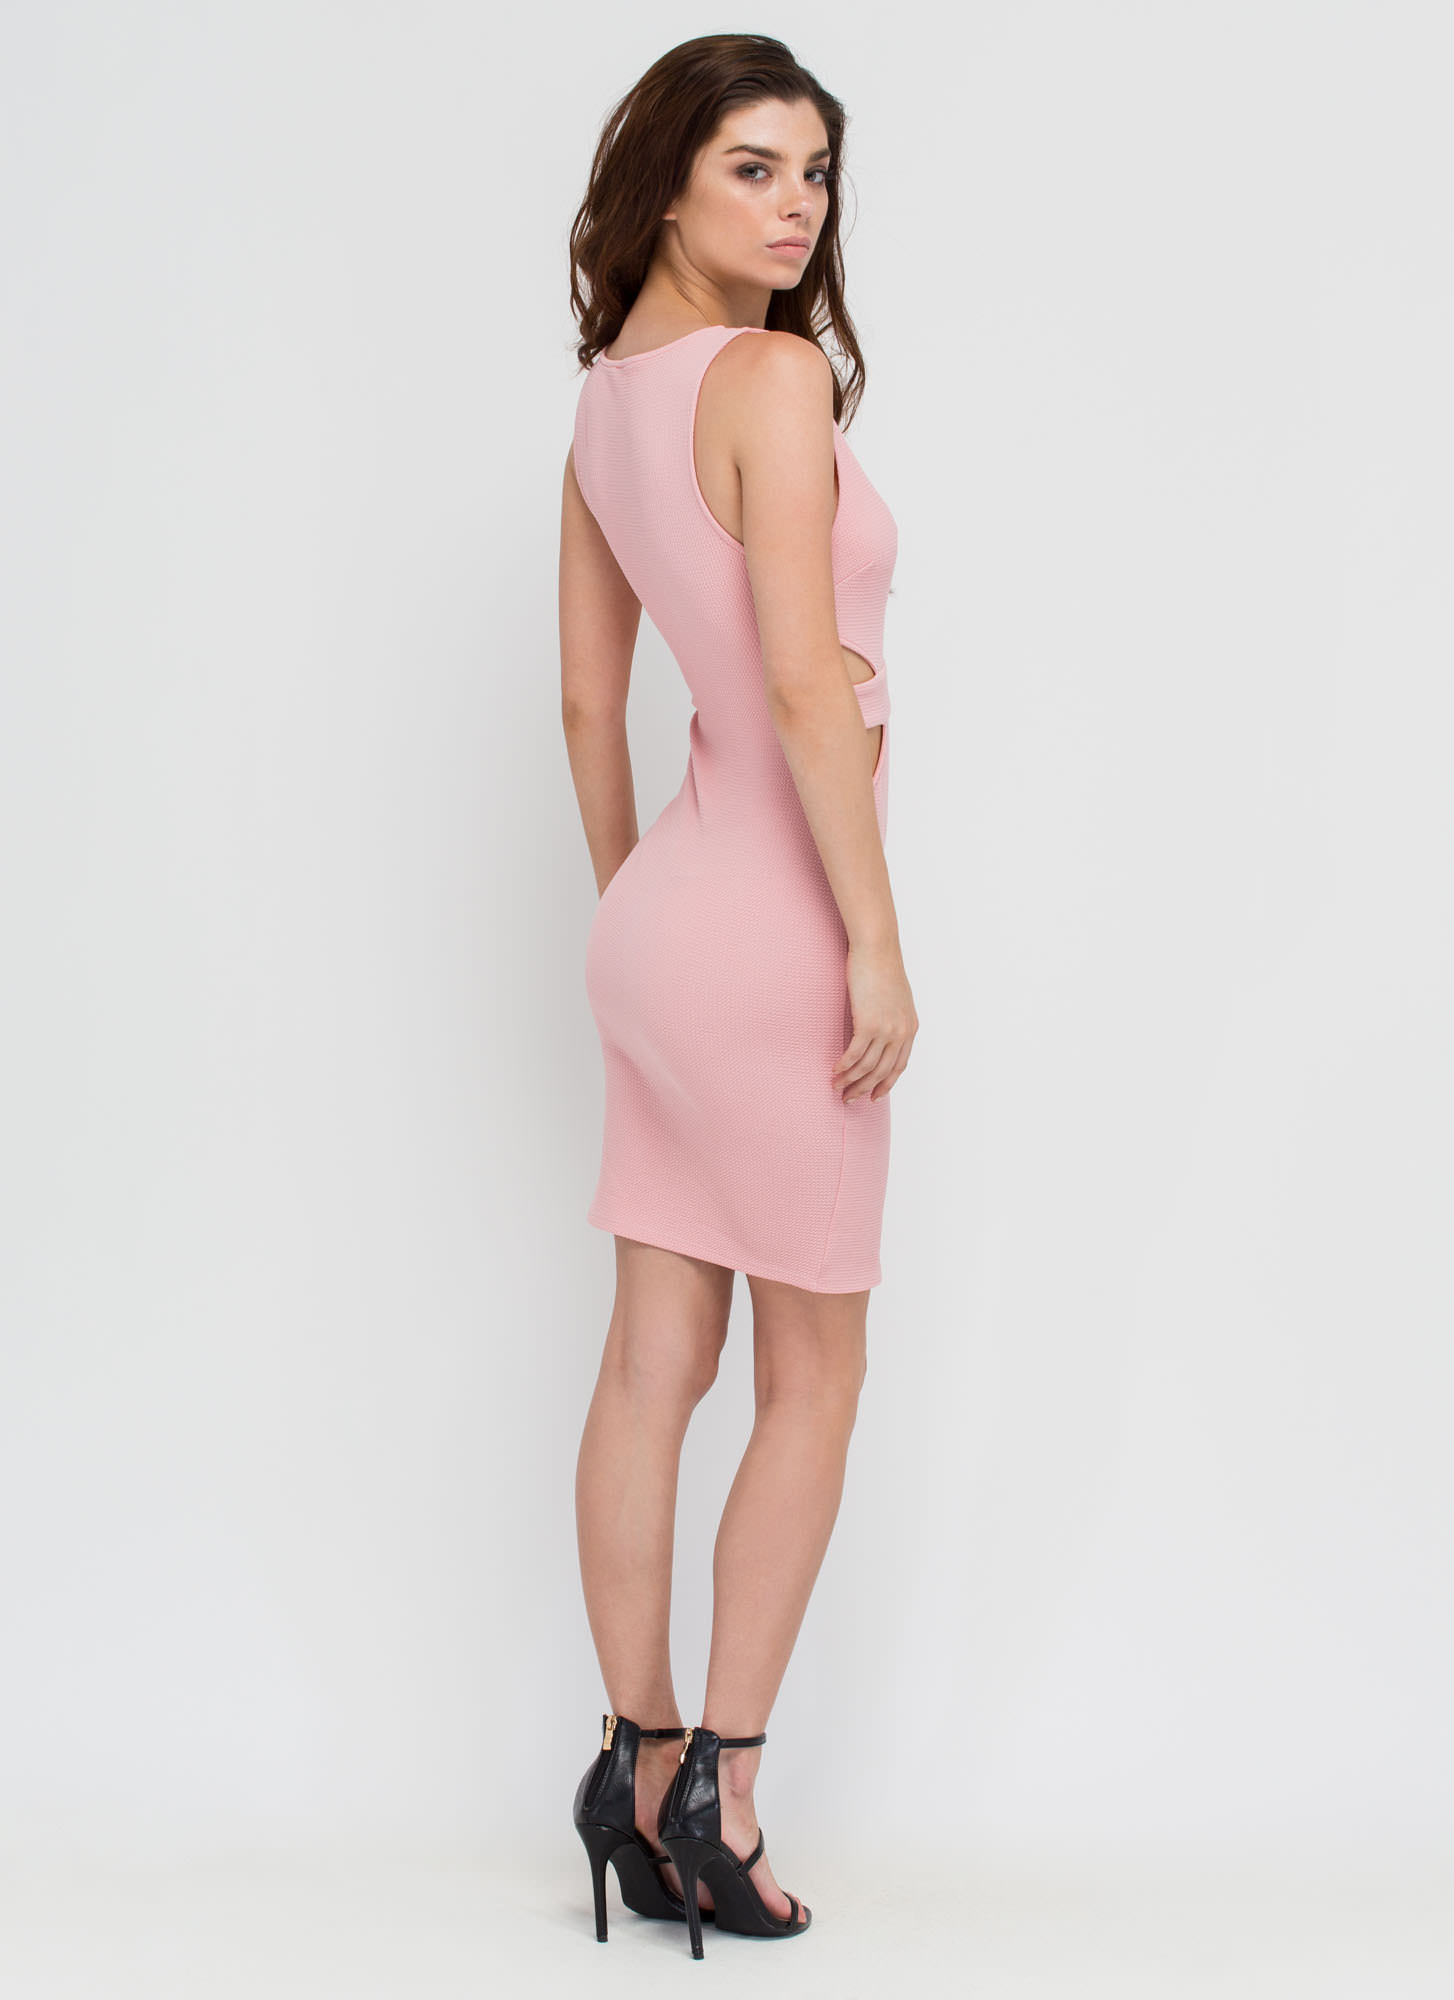 Center Stage Strappy Cut-Out Dress BLUSH